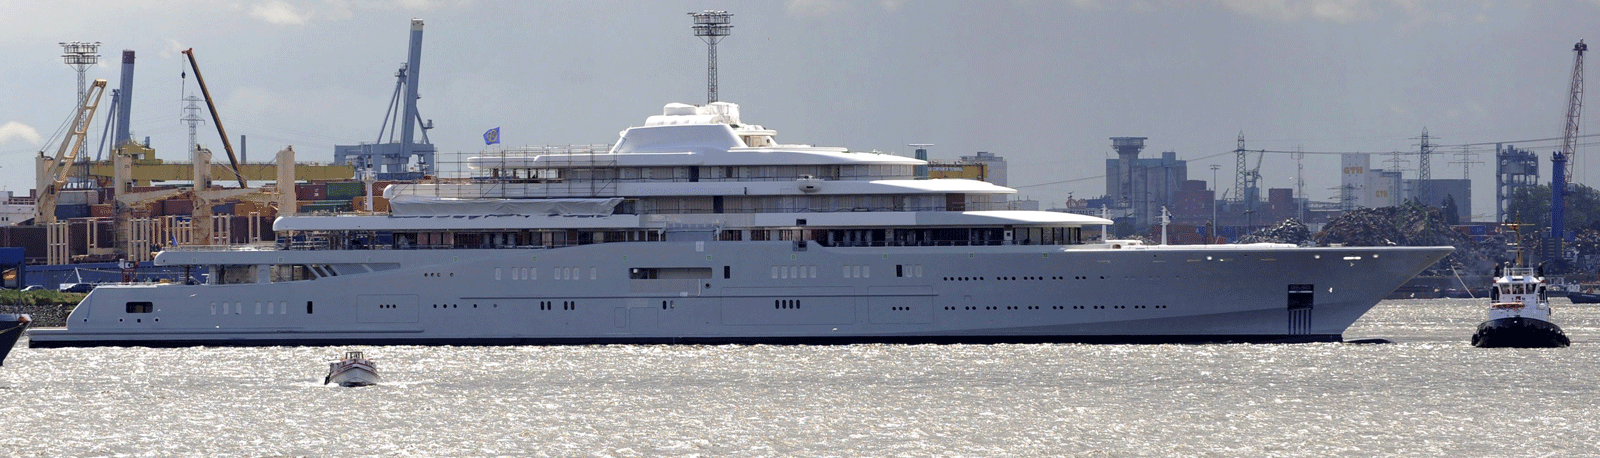 The largest private boat eclipse the superyacht for Largest private boat